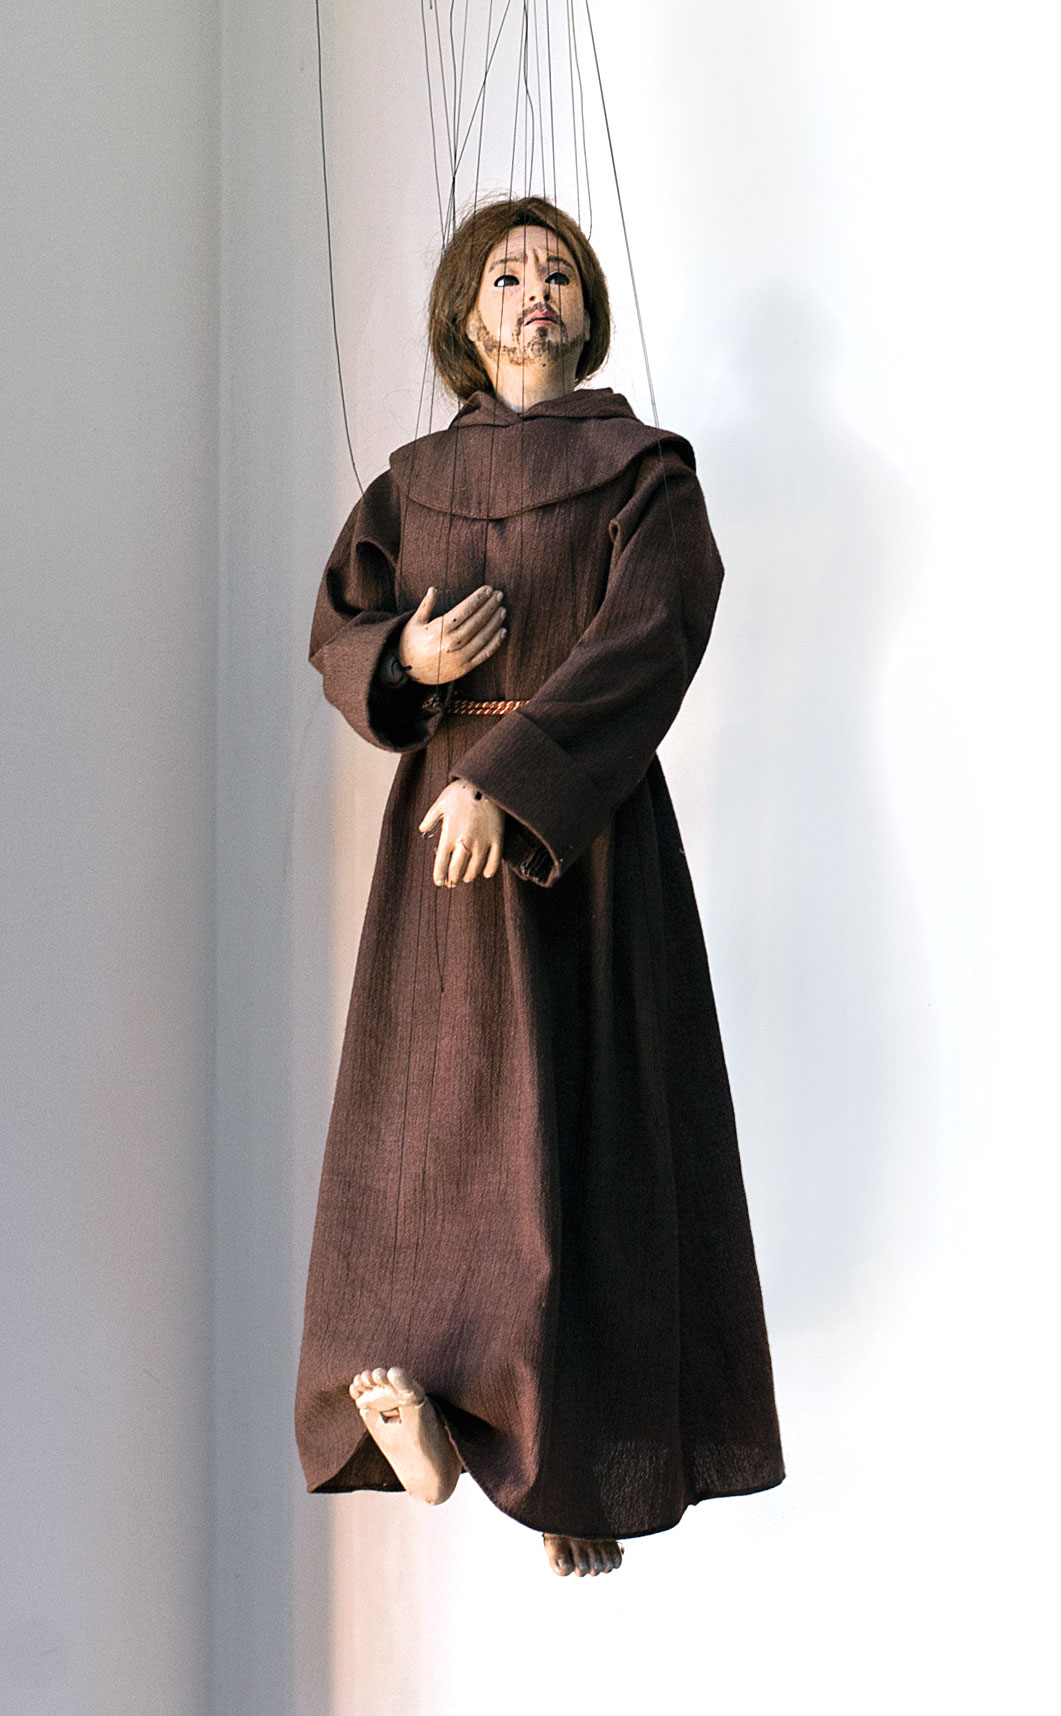 a complex marionette with detailed face and hands dressed in a brown monk's robe